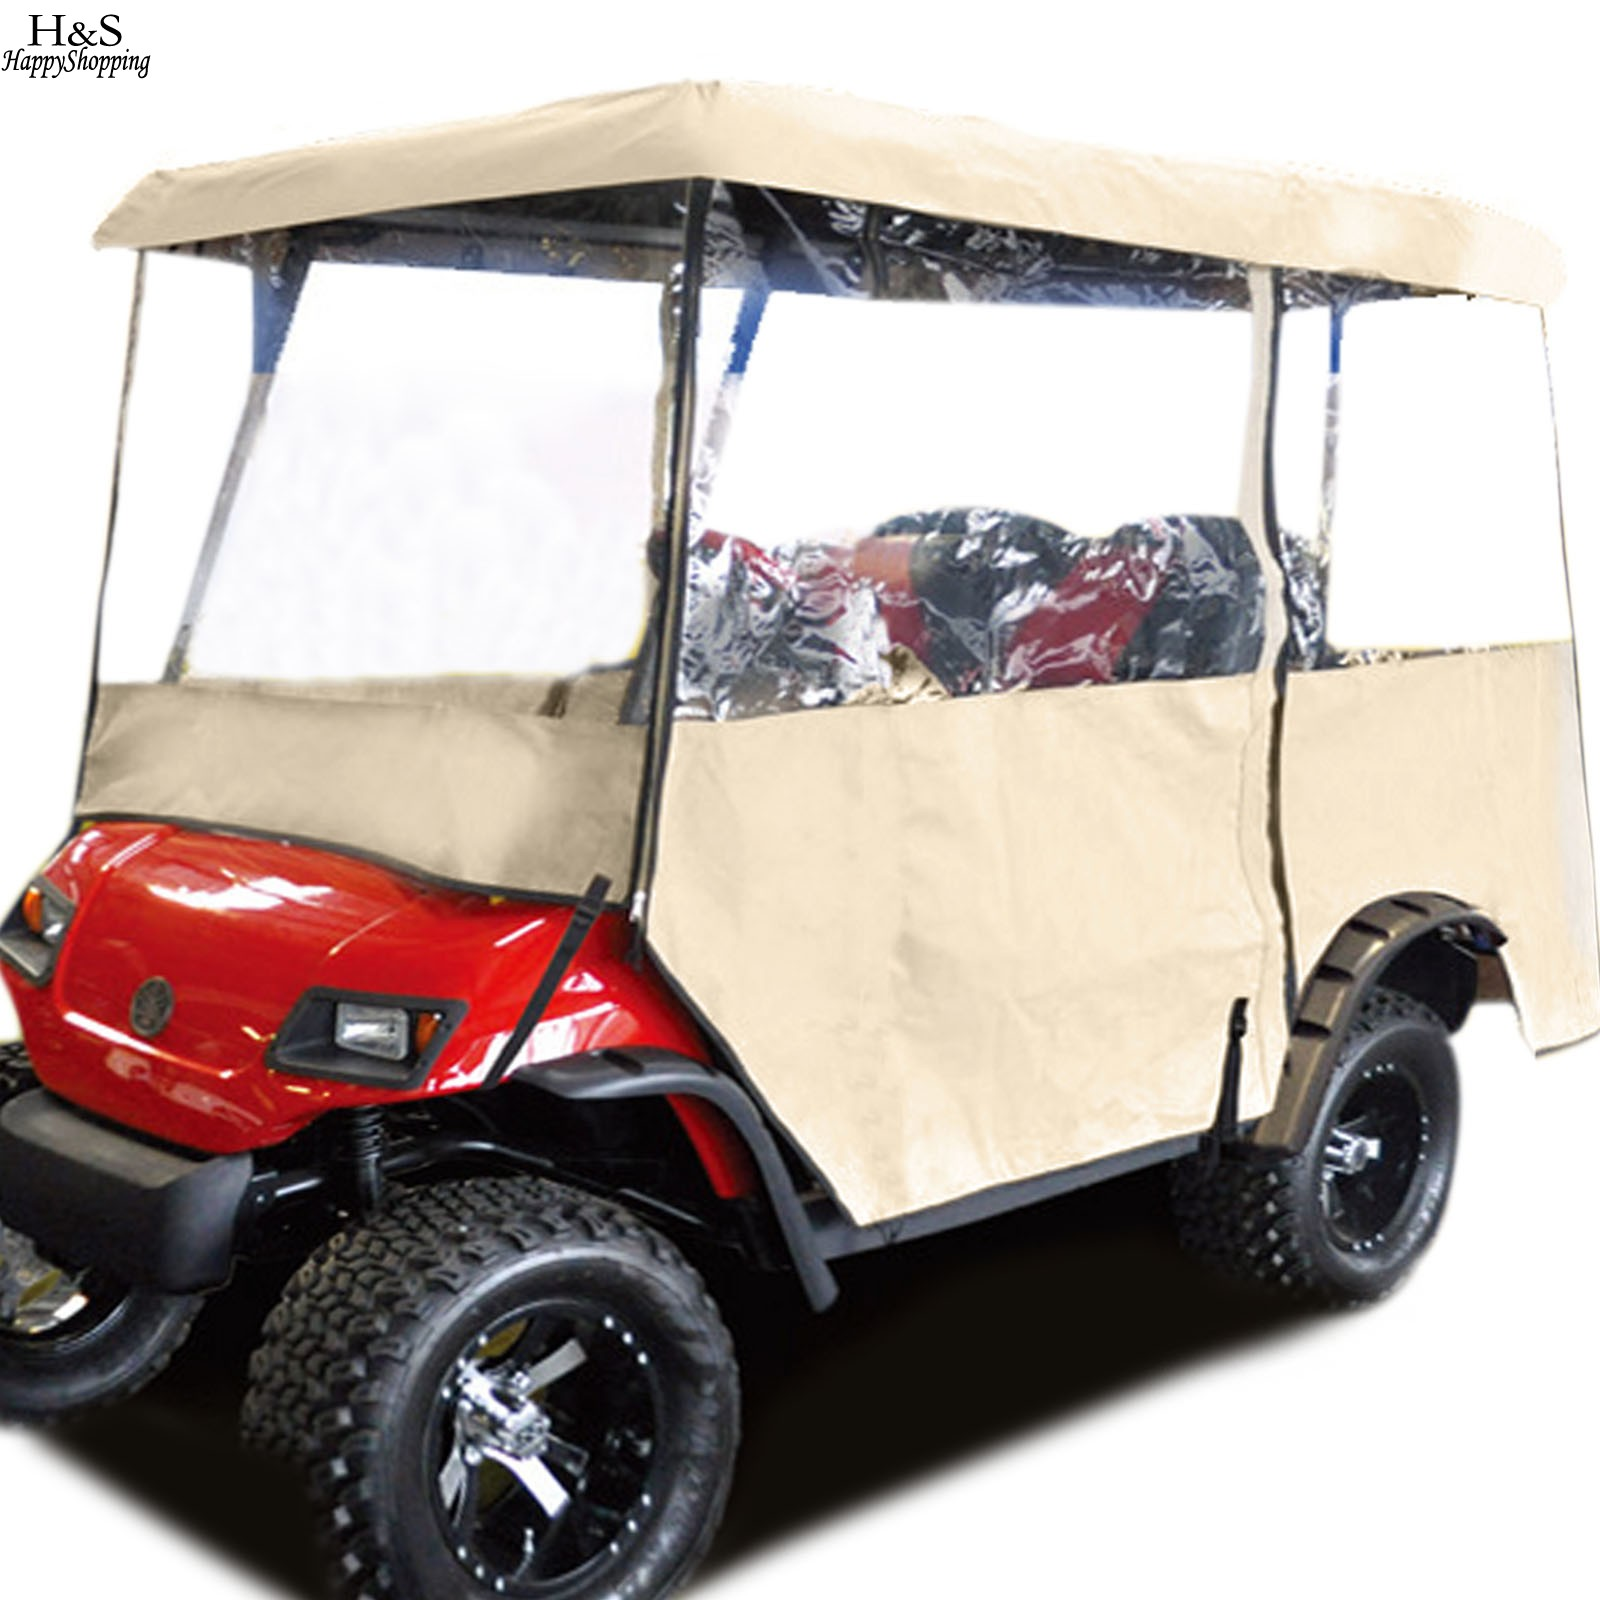 2016 ANCHEER 2 Person Driving Golf Cart Club Car Rain Roof Cover Enclosure with Carry Bag drop shipping